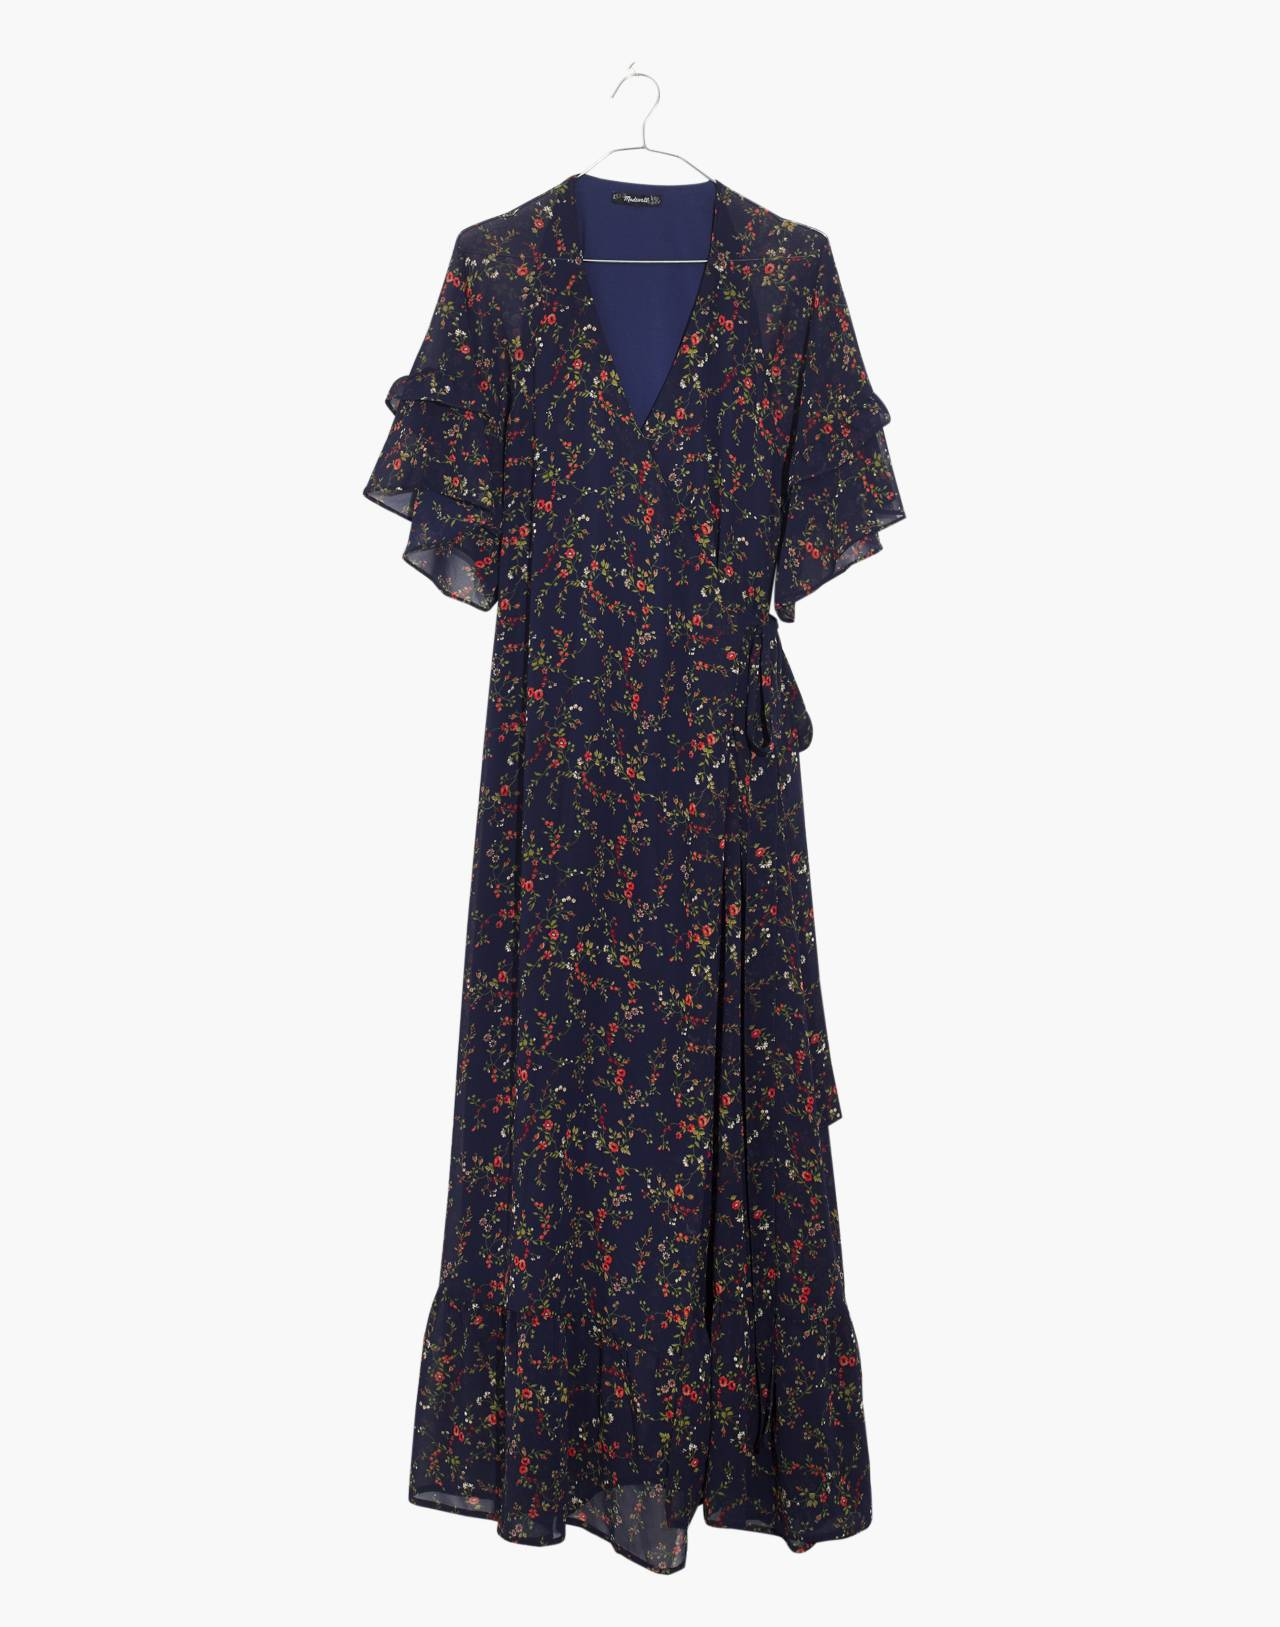 Vervain Ruffle-Sleeve Wrap Dress in Moonless Floral in whisper moonless night image 4